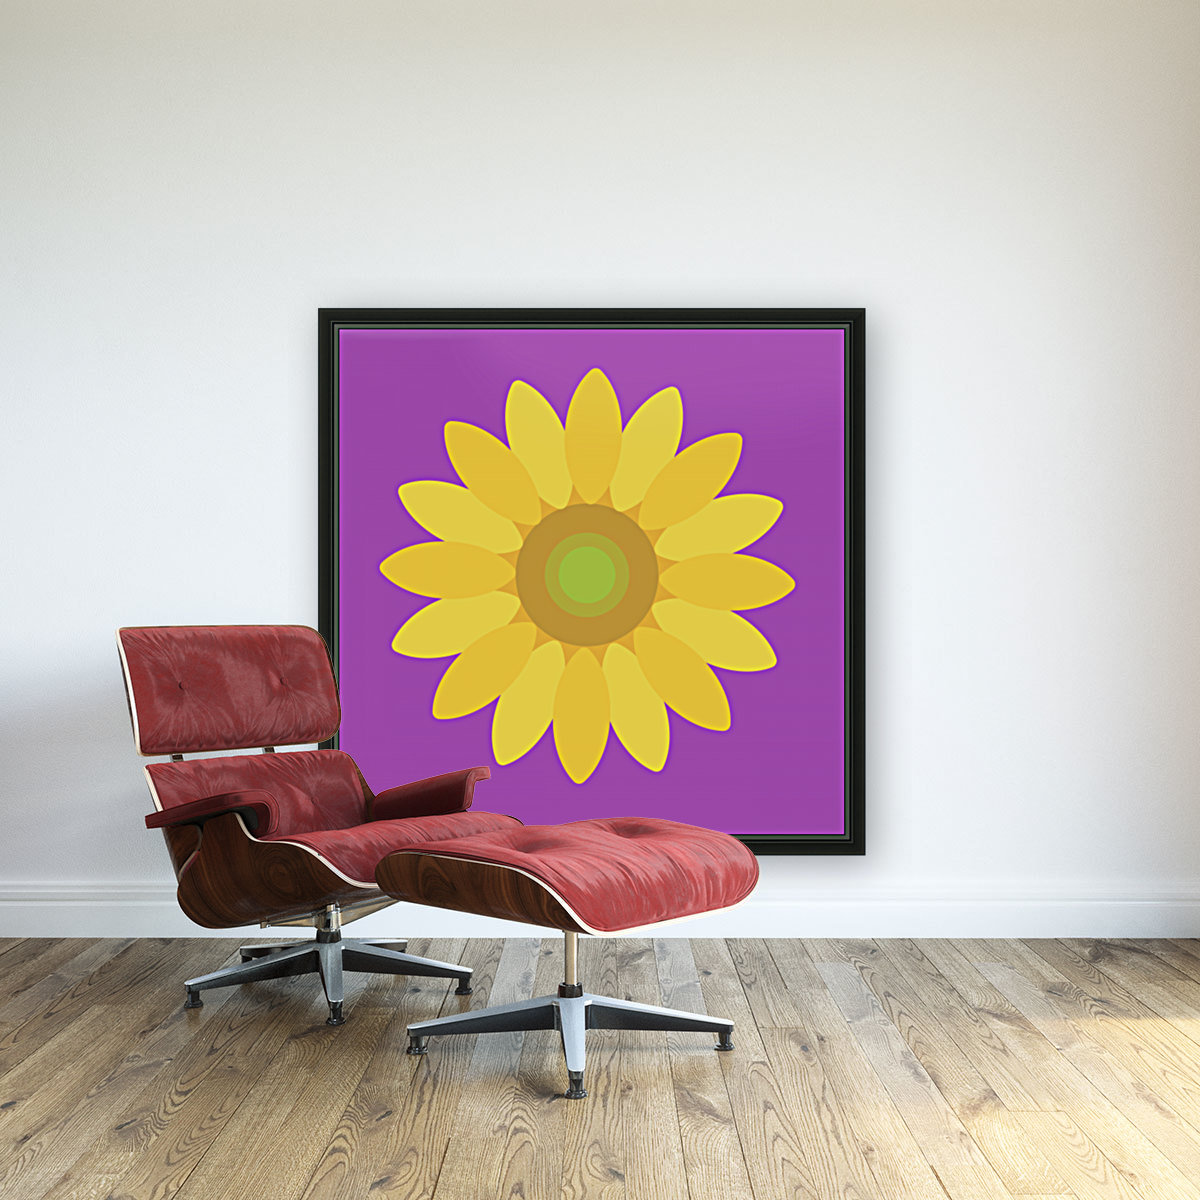 Sunflower (11)_1559876665.8187  Art